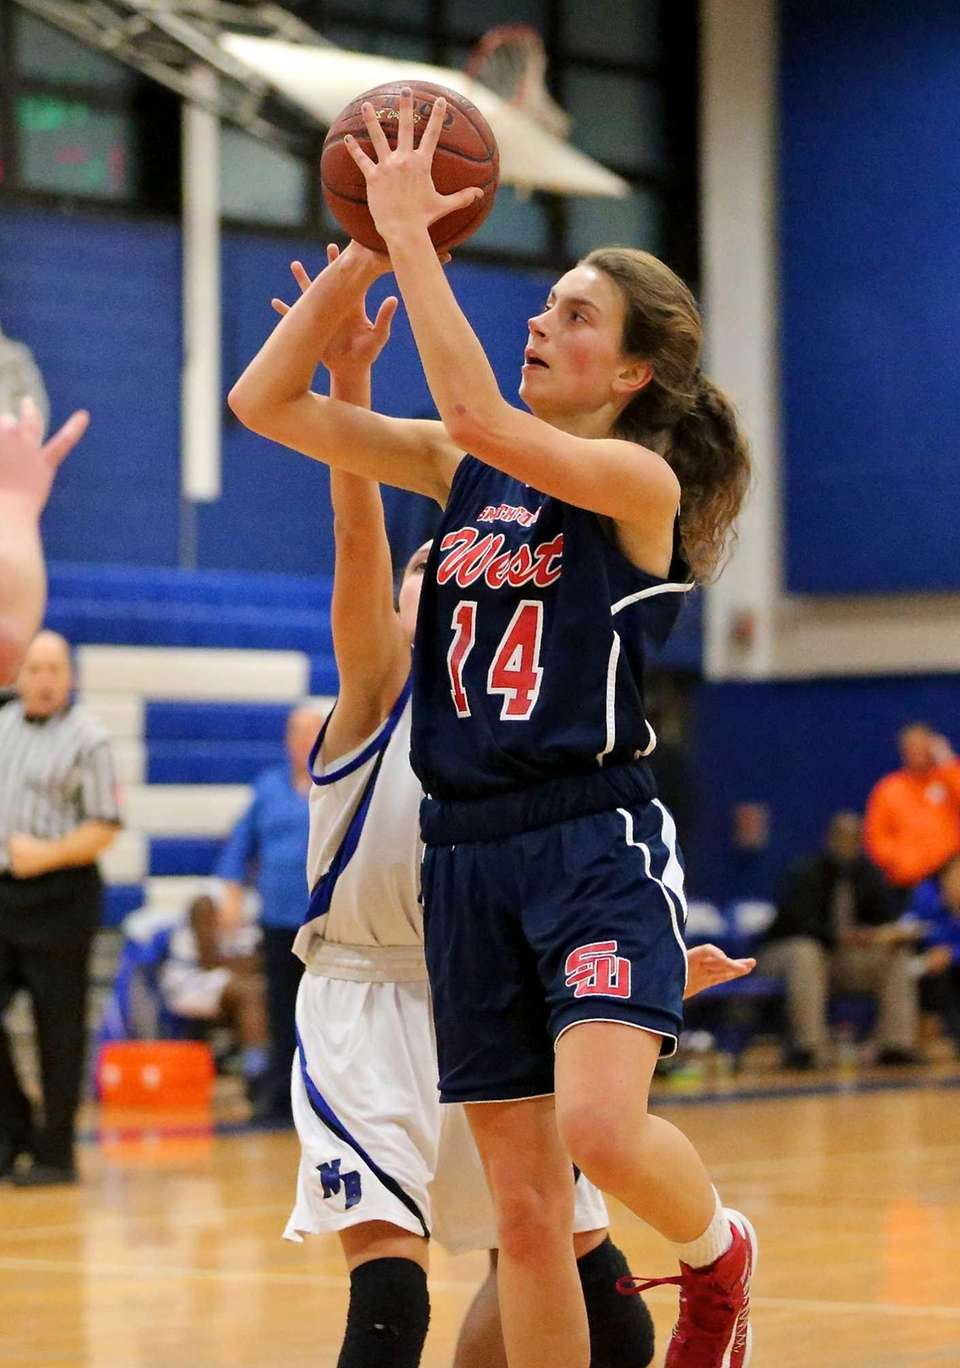 Smithtown West guard Brenna Butler puts up the